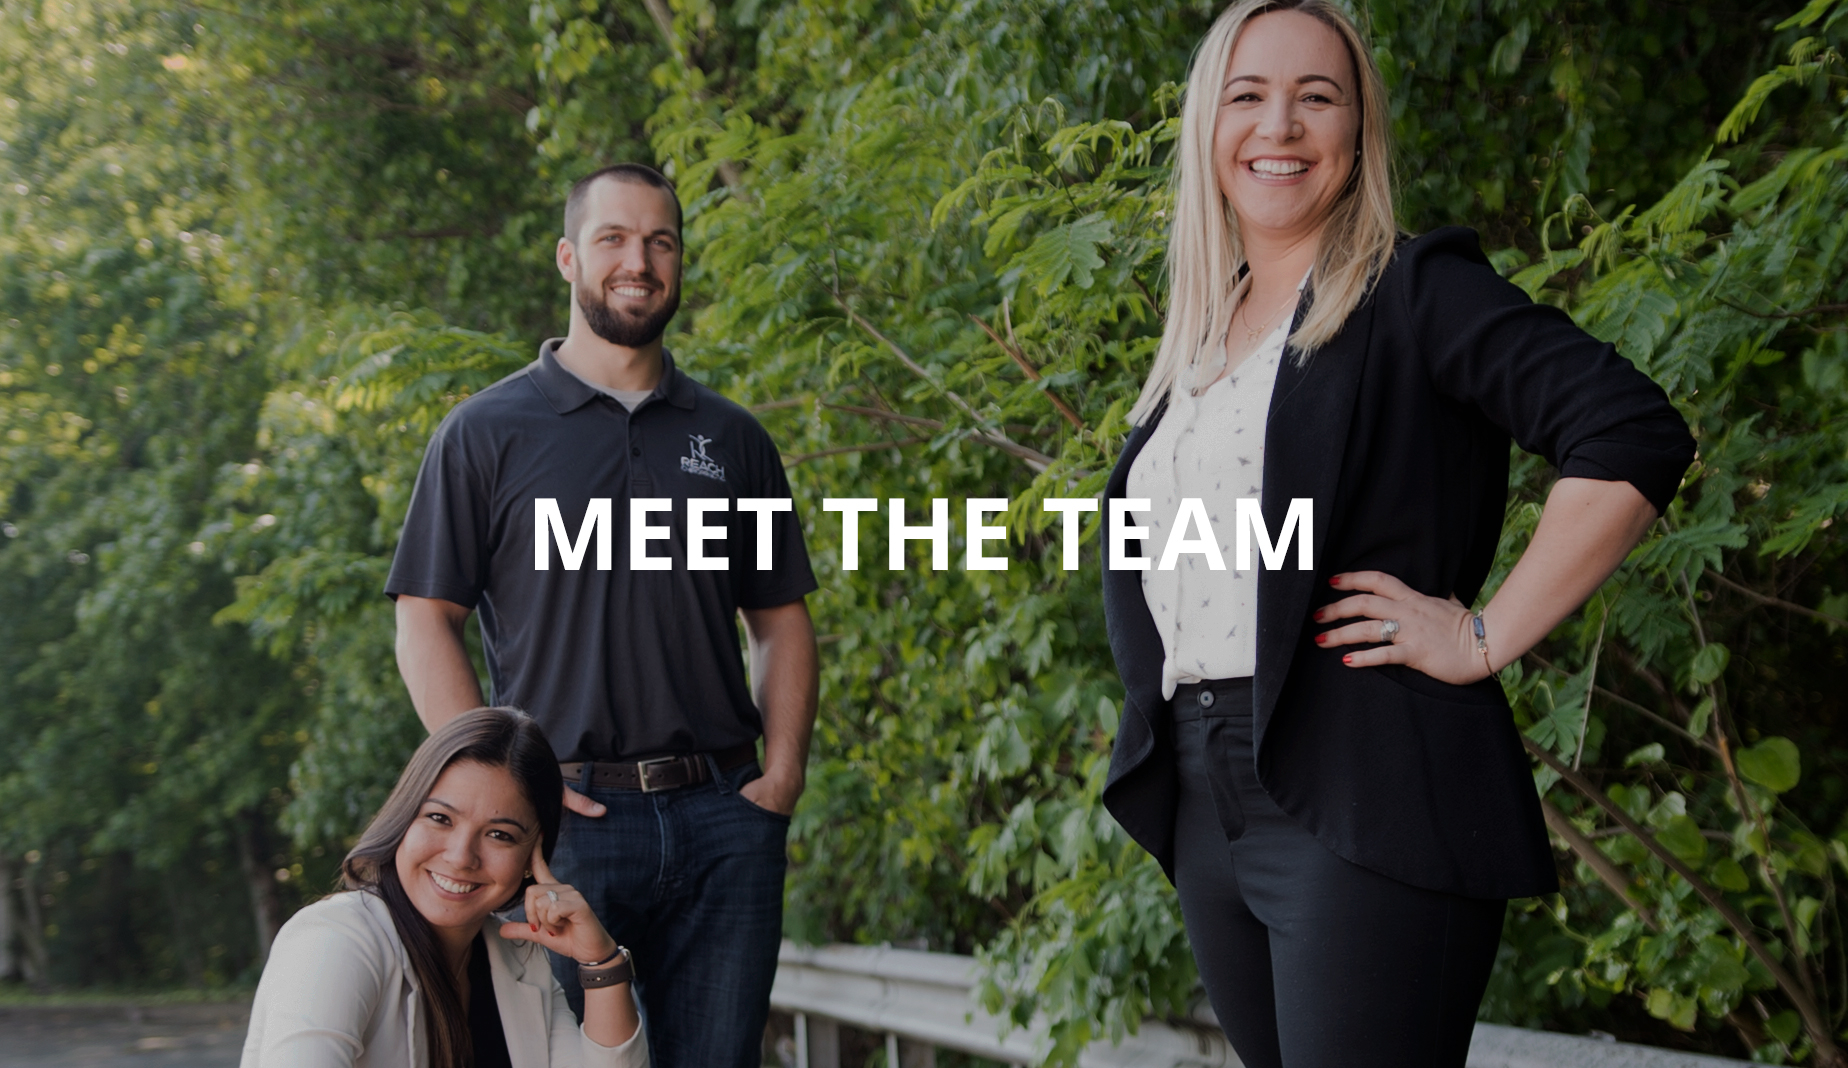 Meet the team at Reach Chiropractic in Kennesaw